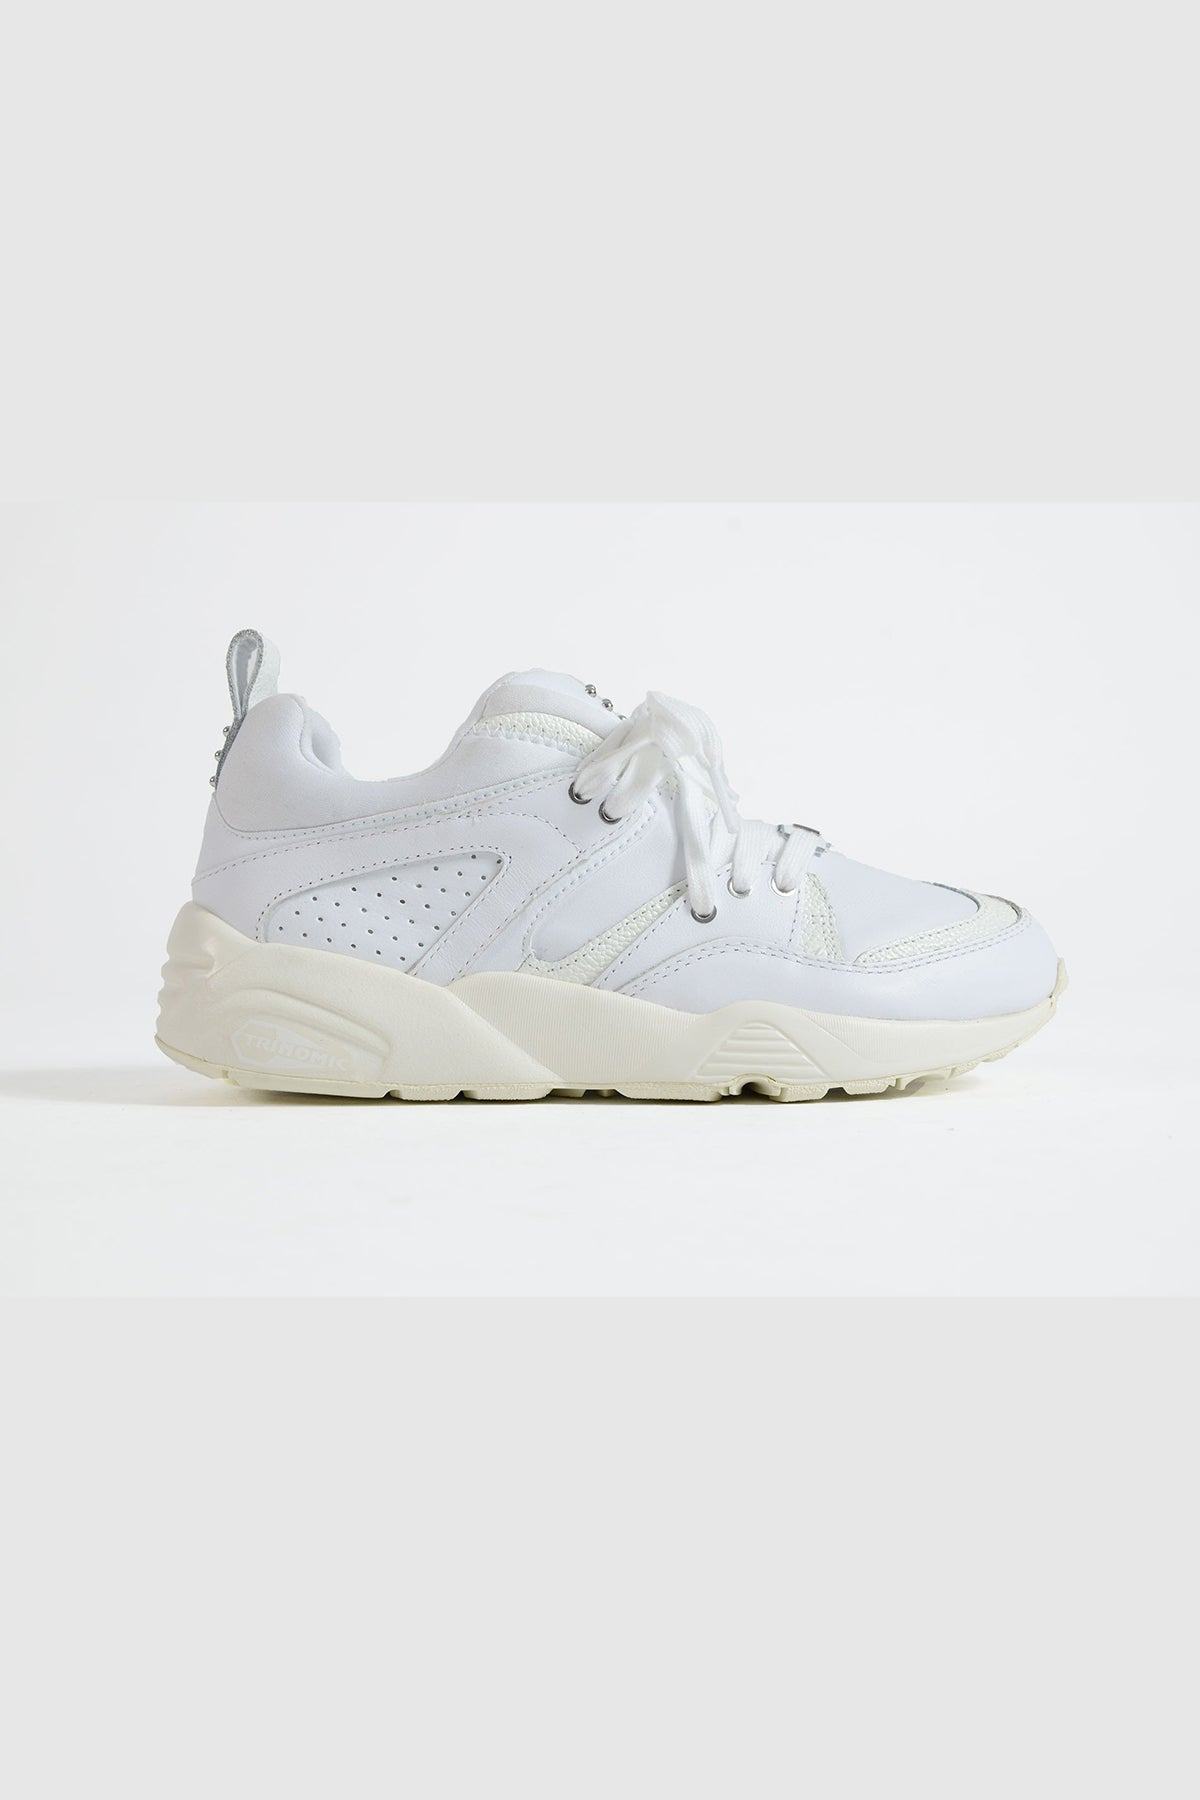 Puma - Blaze of Glory Decor Women (White/ Whisper White)